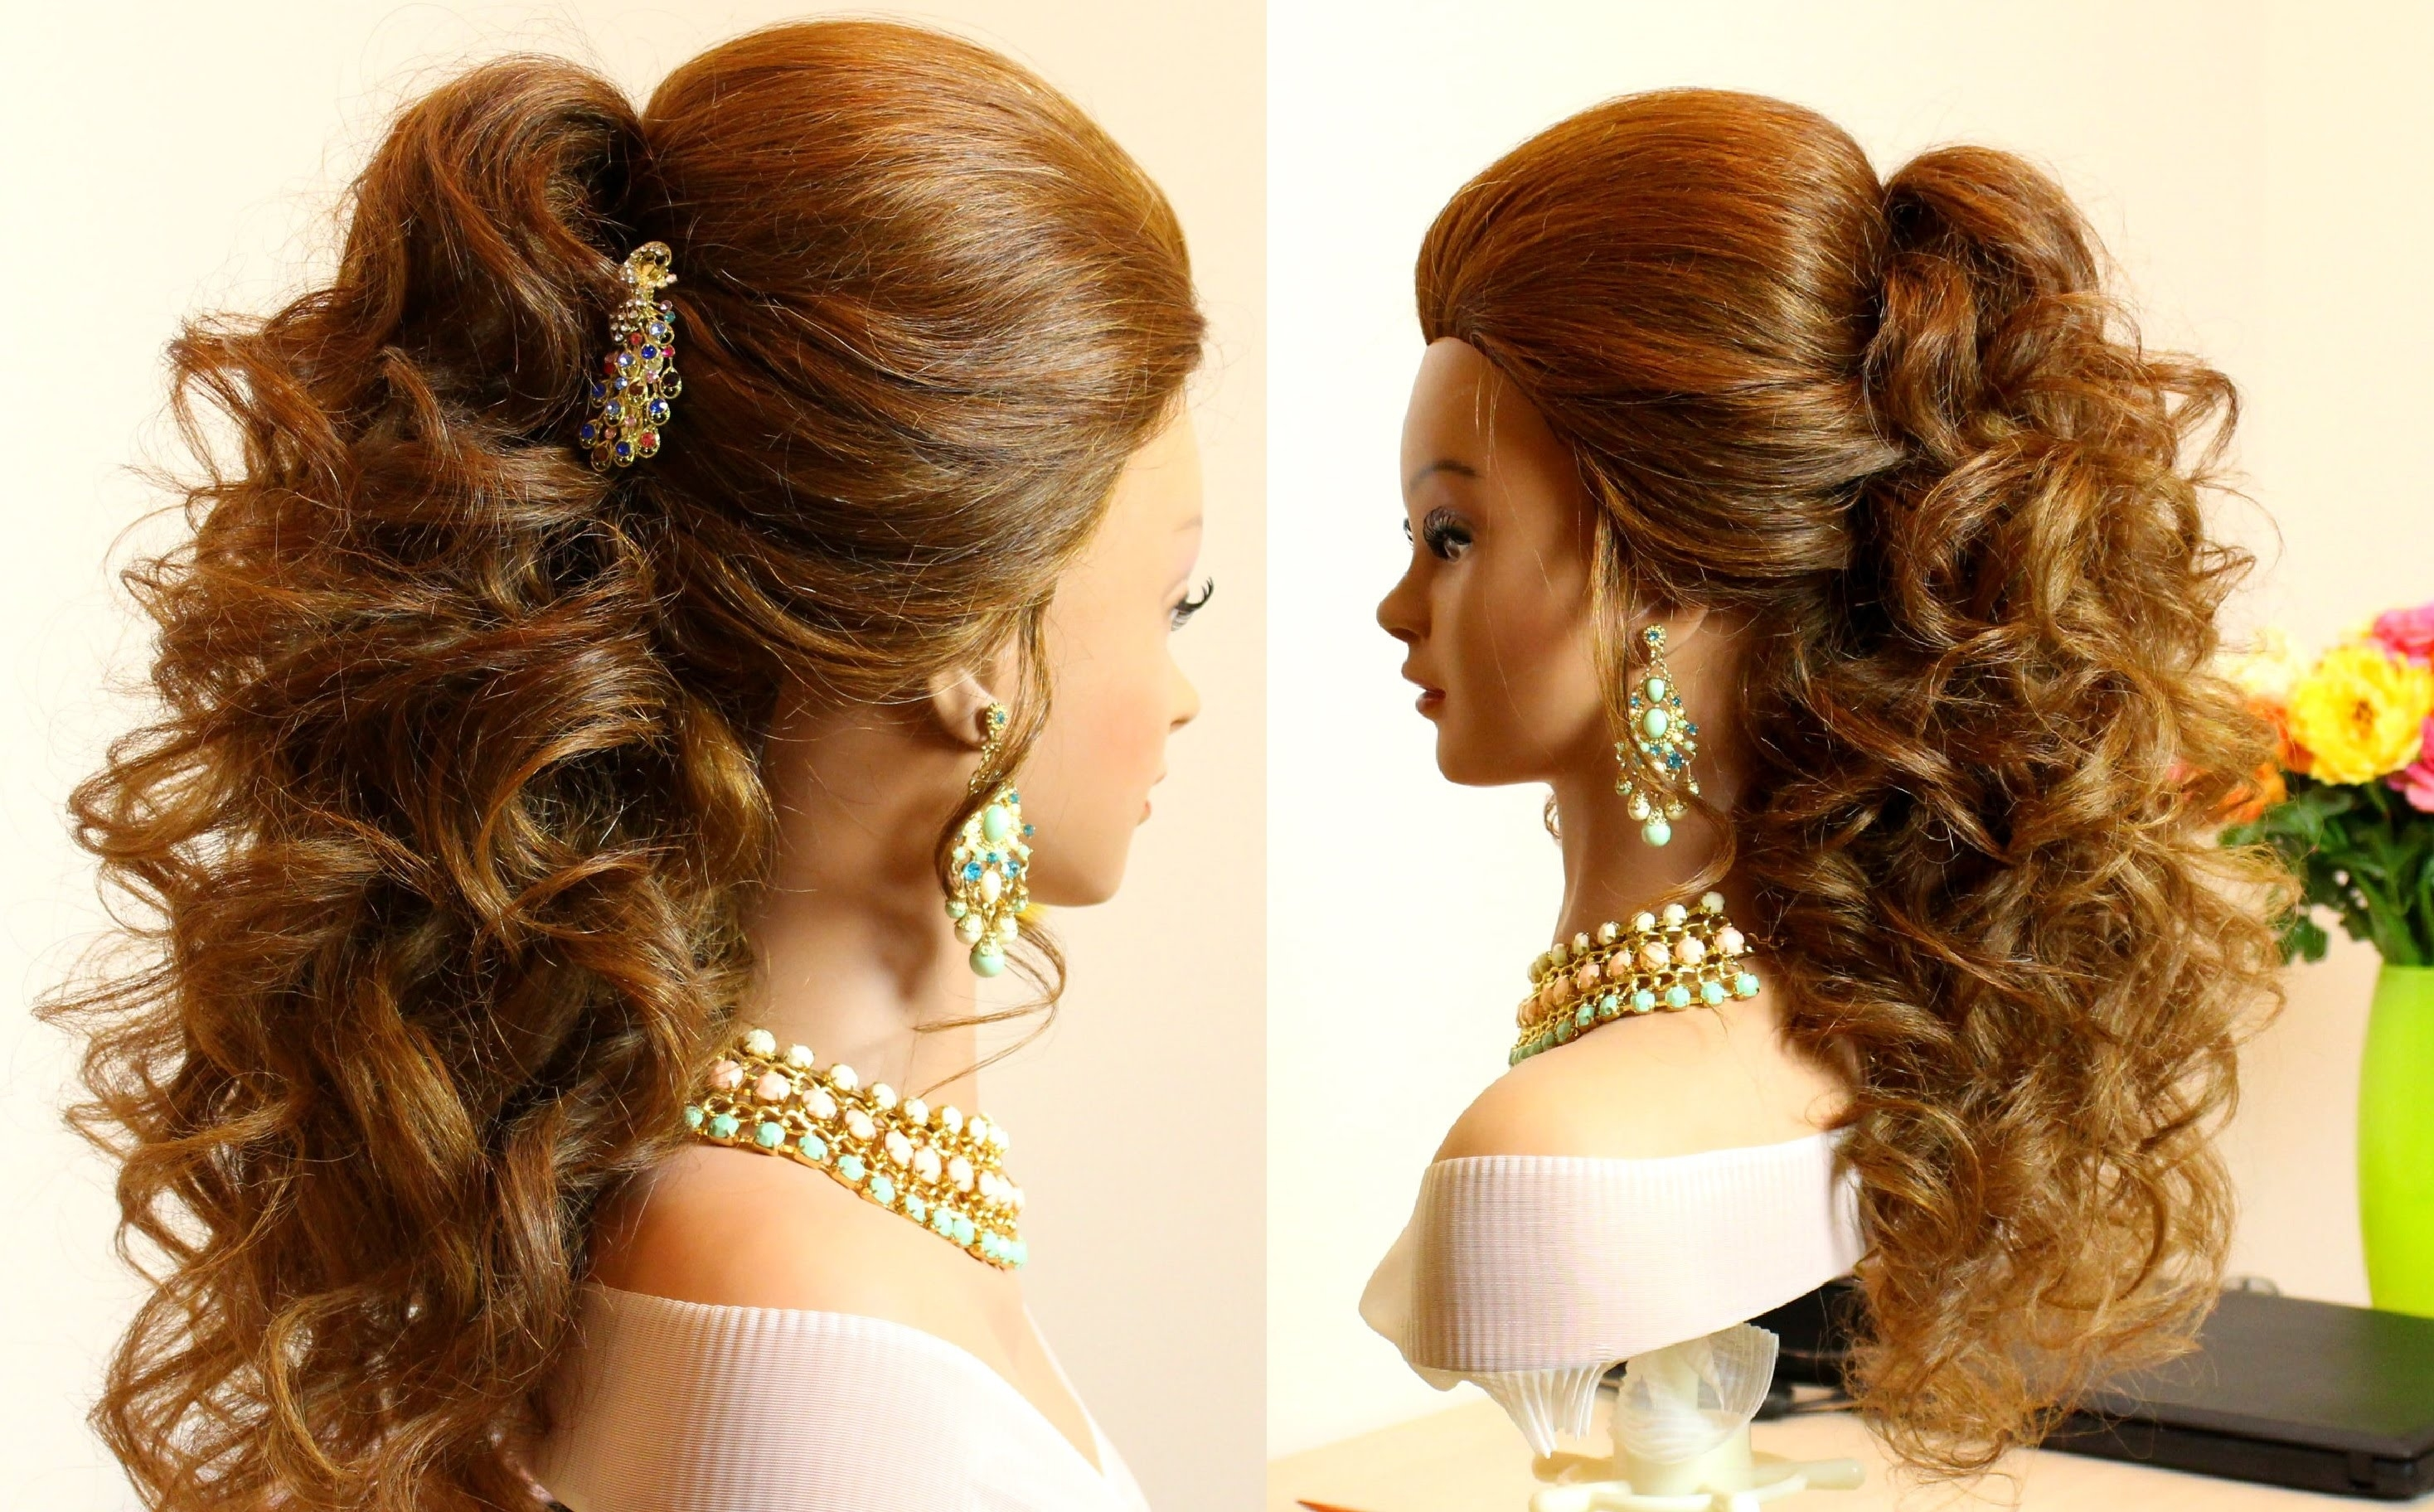 Curly Bridal Hairstyle For Long Hair Tutorial - Youtube regarding Curly Hairstyle For Long Hair